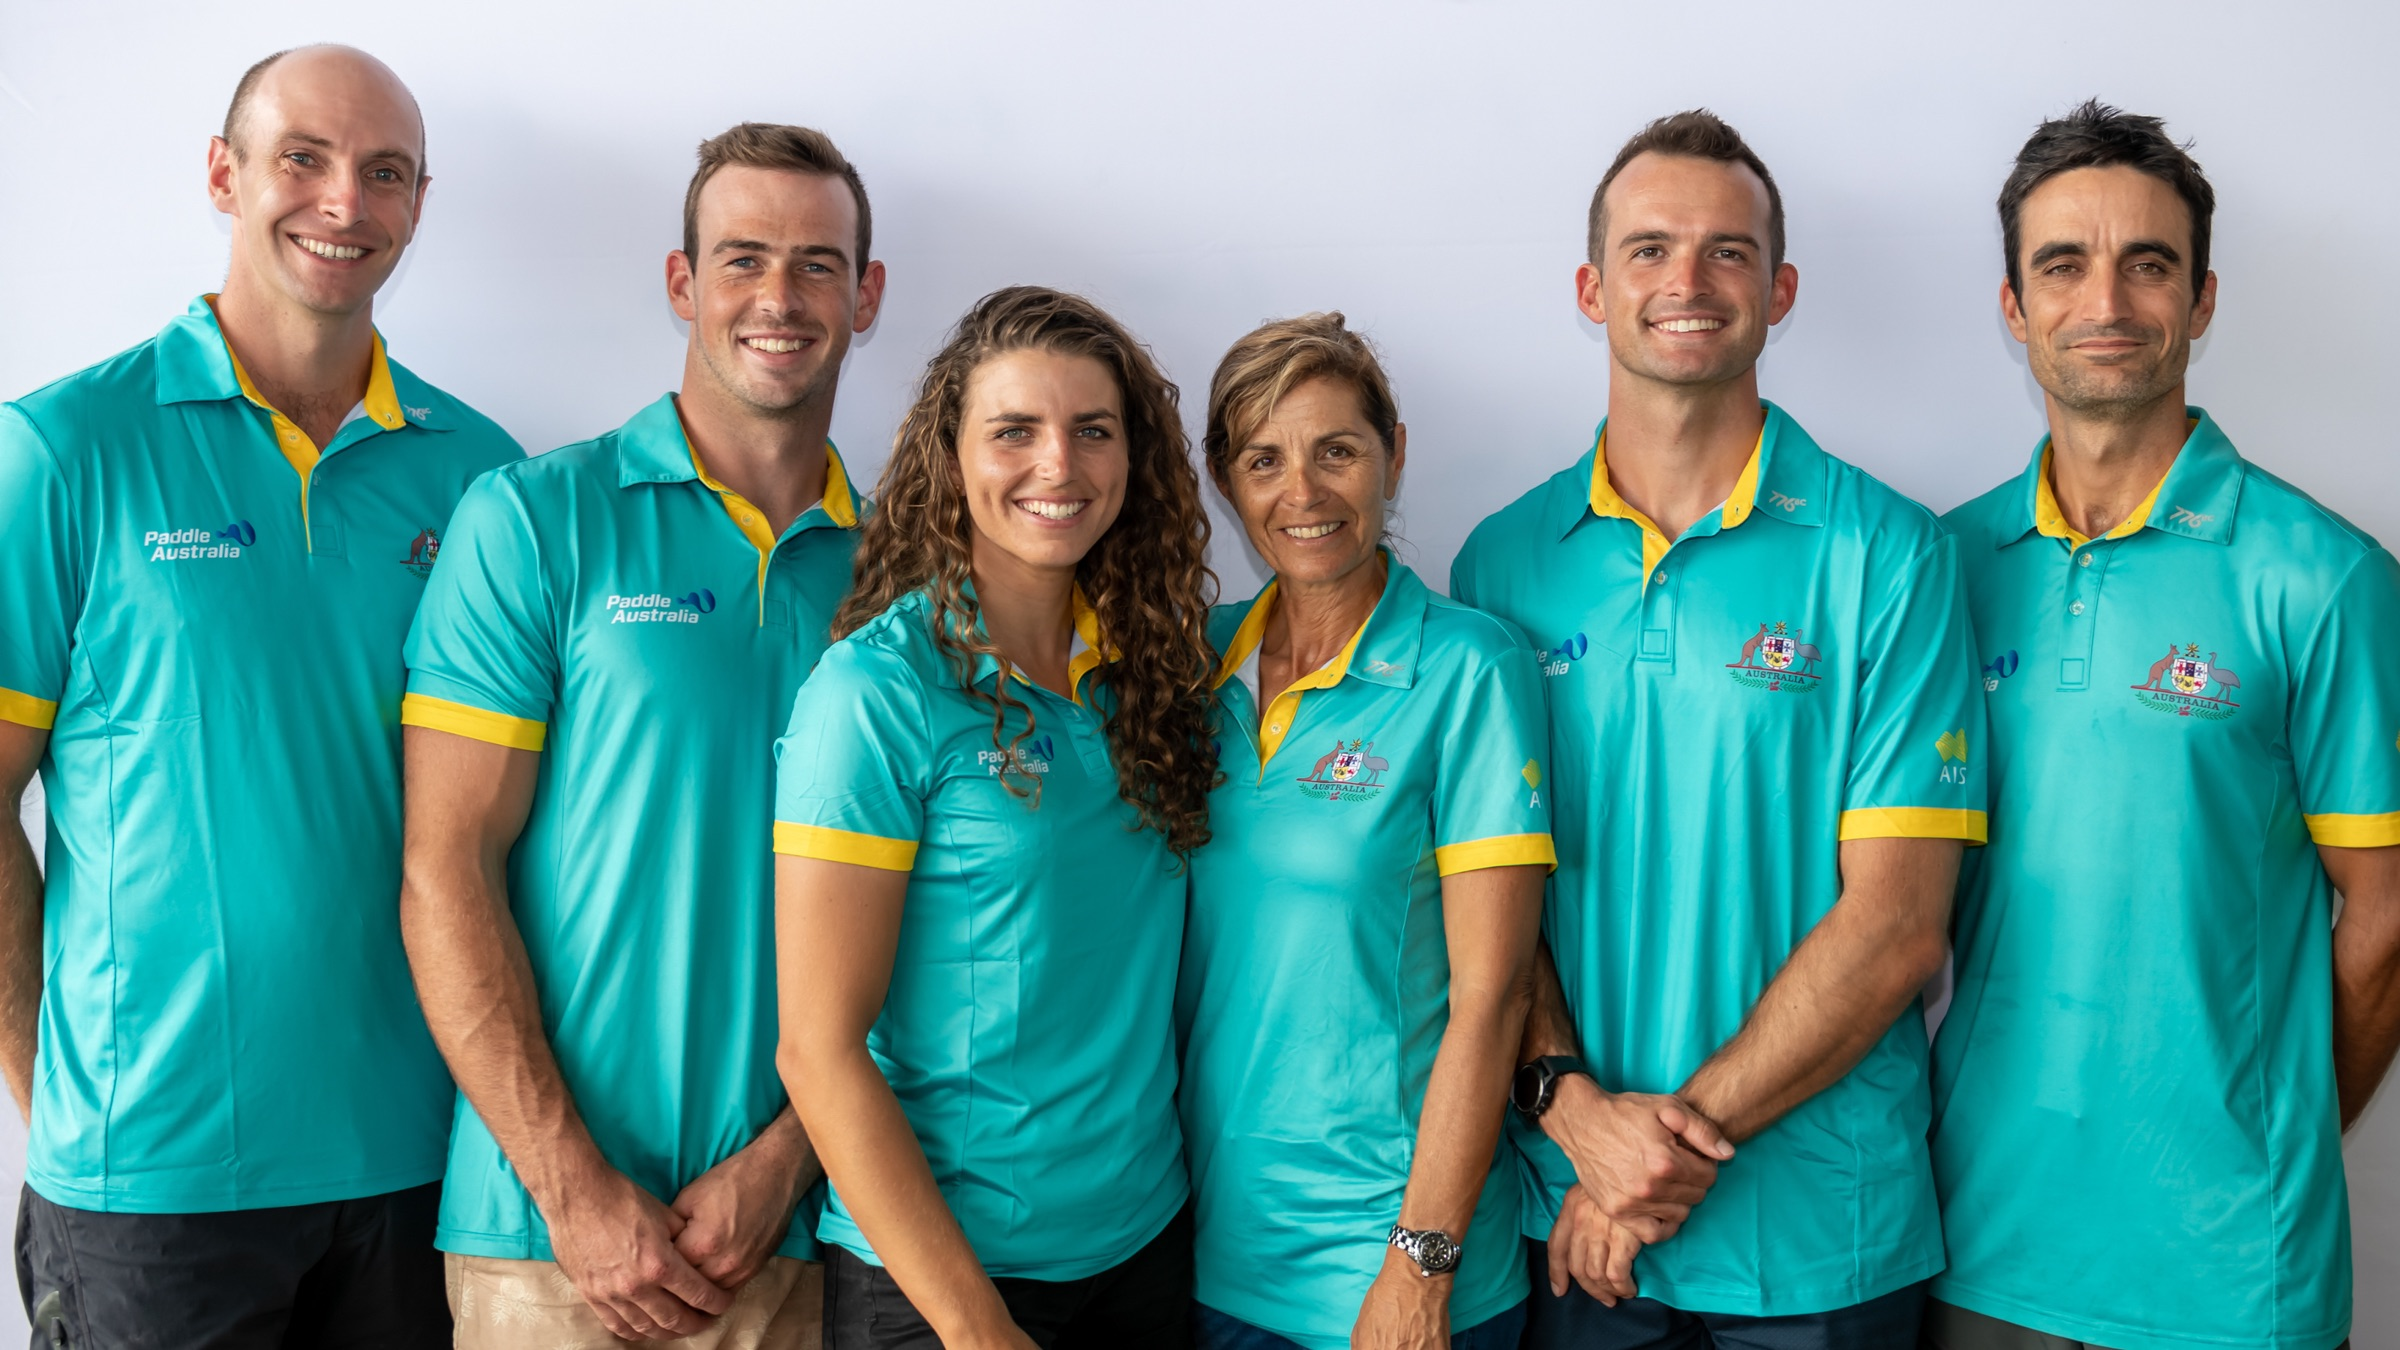 Canoe Slalom Team - Photo Credit JGR Images